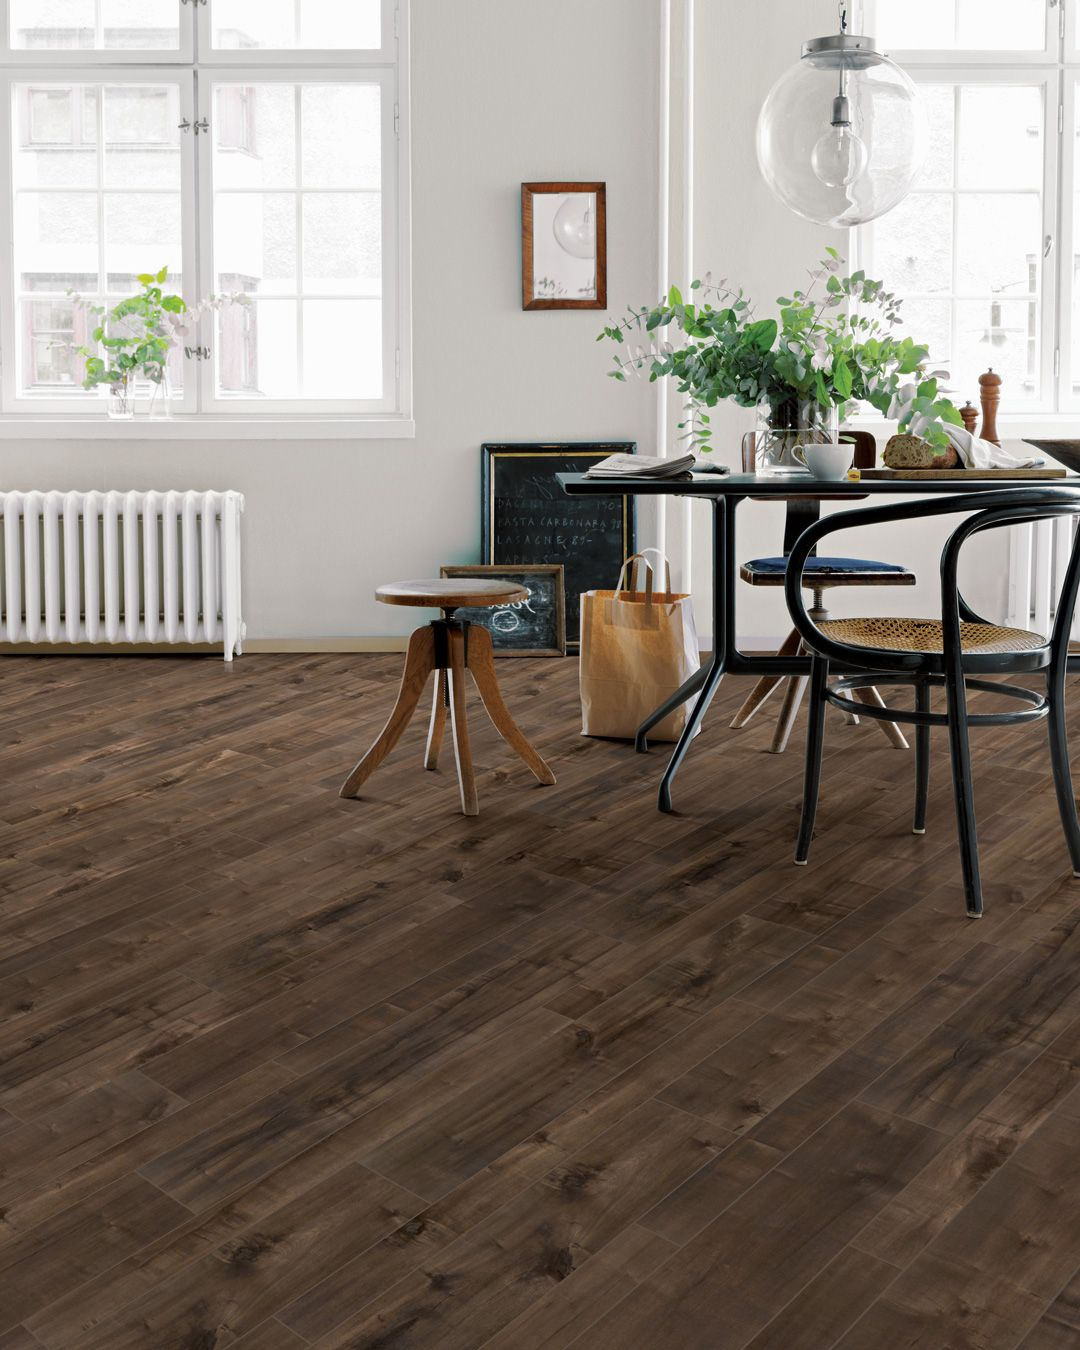 Tarkett Laminate Flooring lovable tarkett laminate flooring wooden laminate flooring floating commercial select 833 Tarkett Laminate Fresh Air In Natural